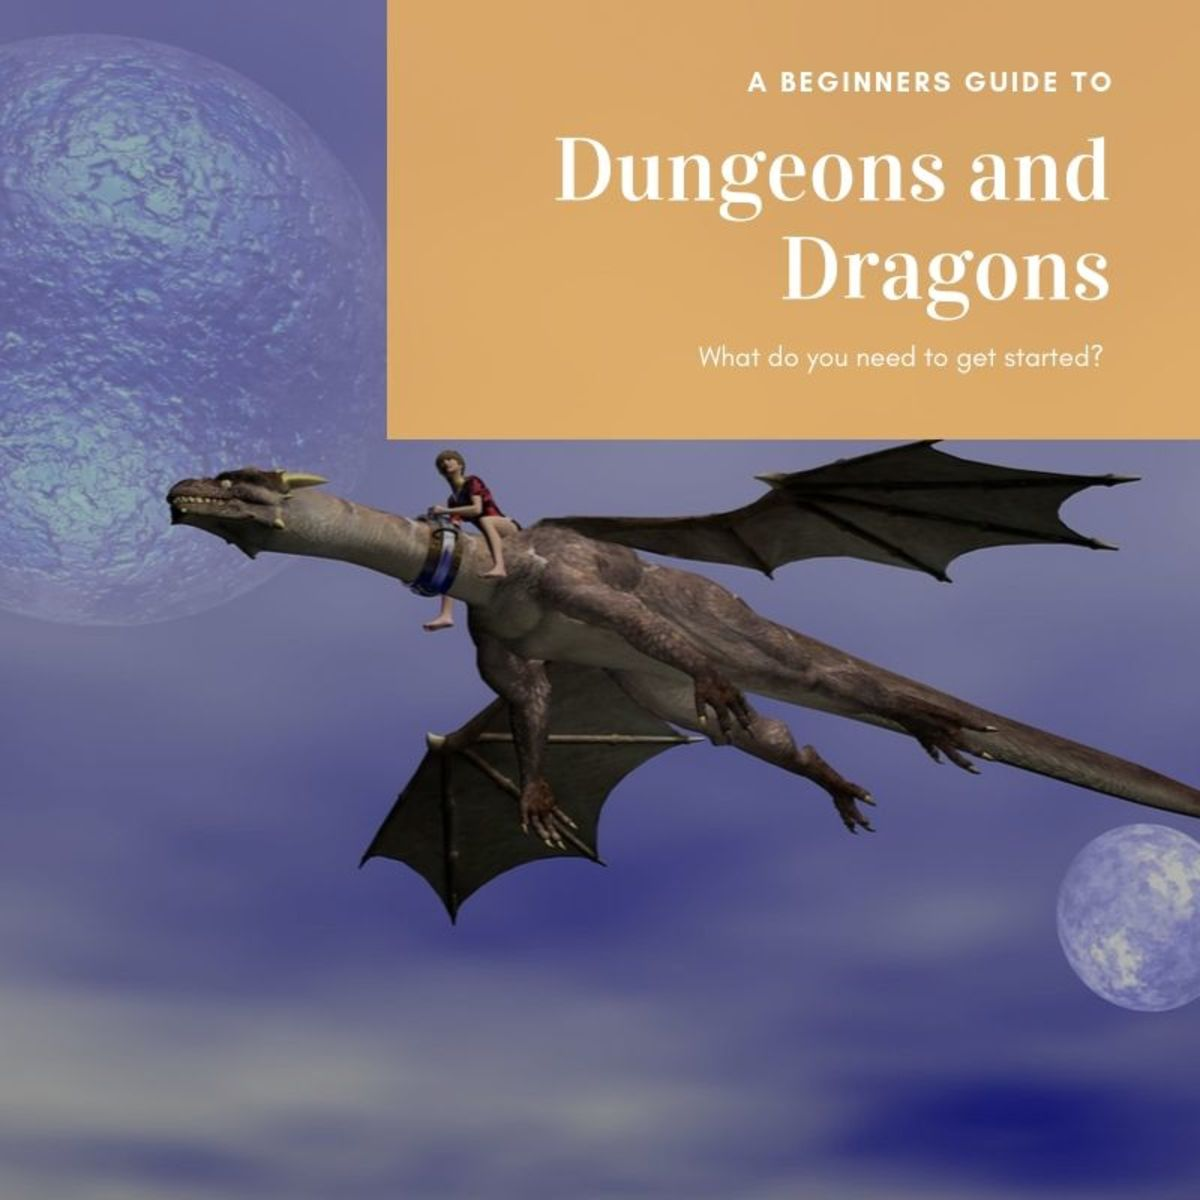 Since imagination and innovation are key components of D&D, the supplies you need to play will vary based on your personal style. However, there are a few items that will help get your game off to a great start.